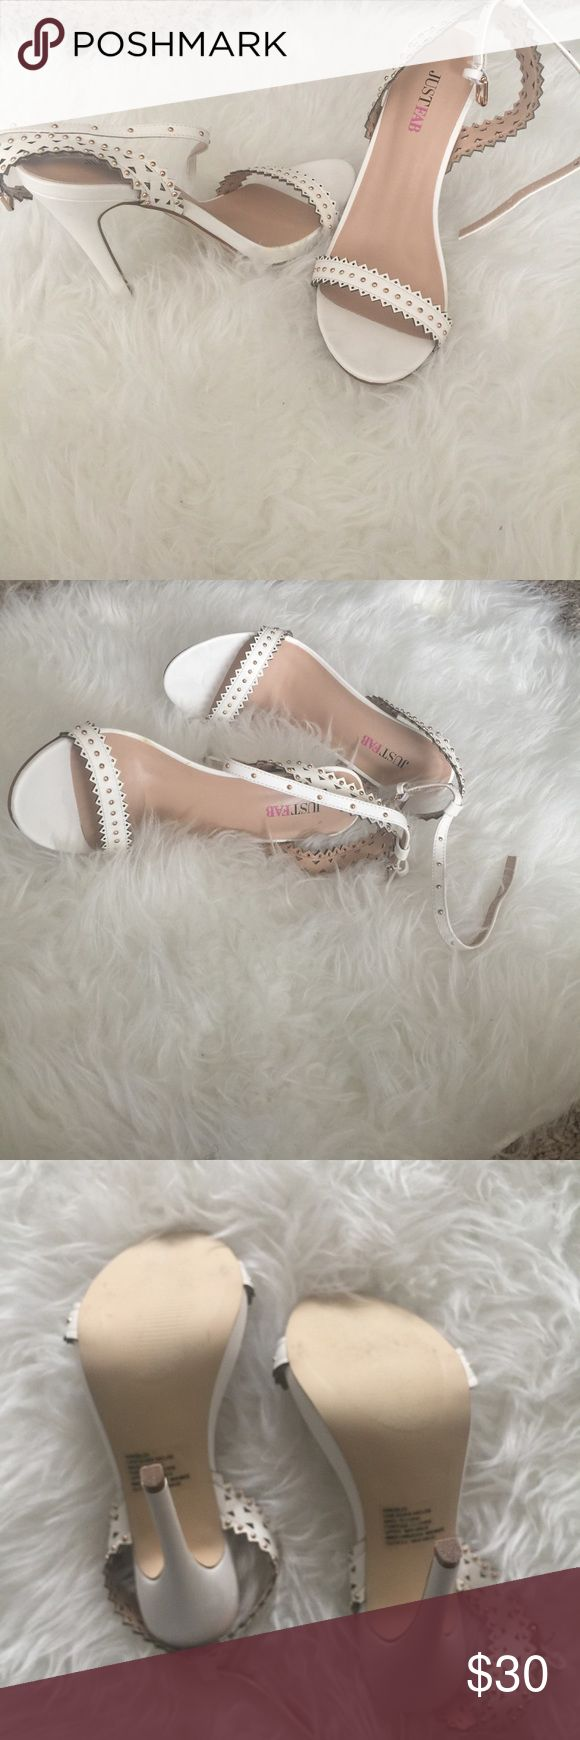 JustFab White Heel Sandals Fairly new, worn only once. Pretty for spring/summer look JustFab Shoes Heels